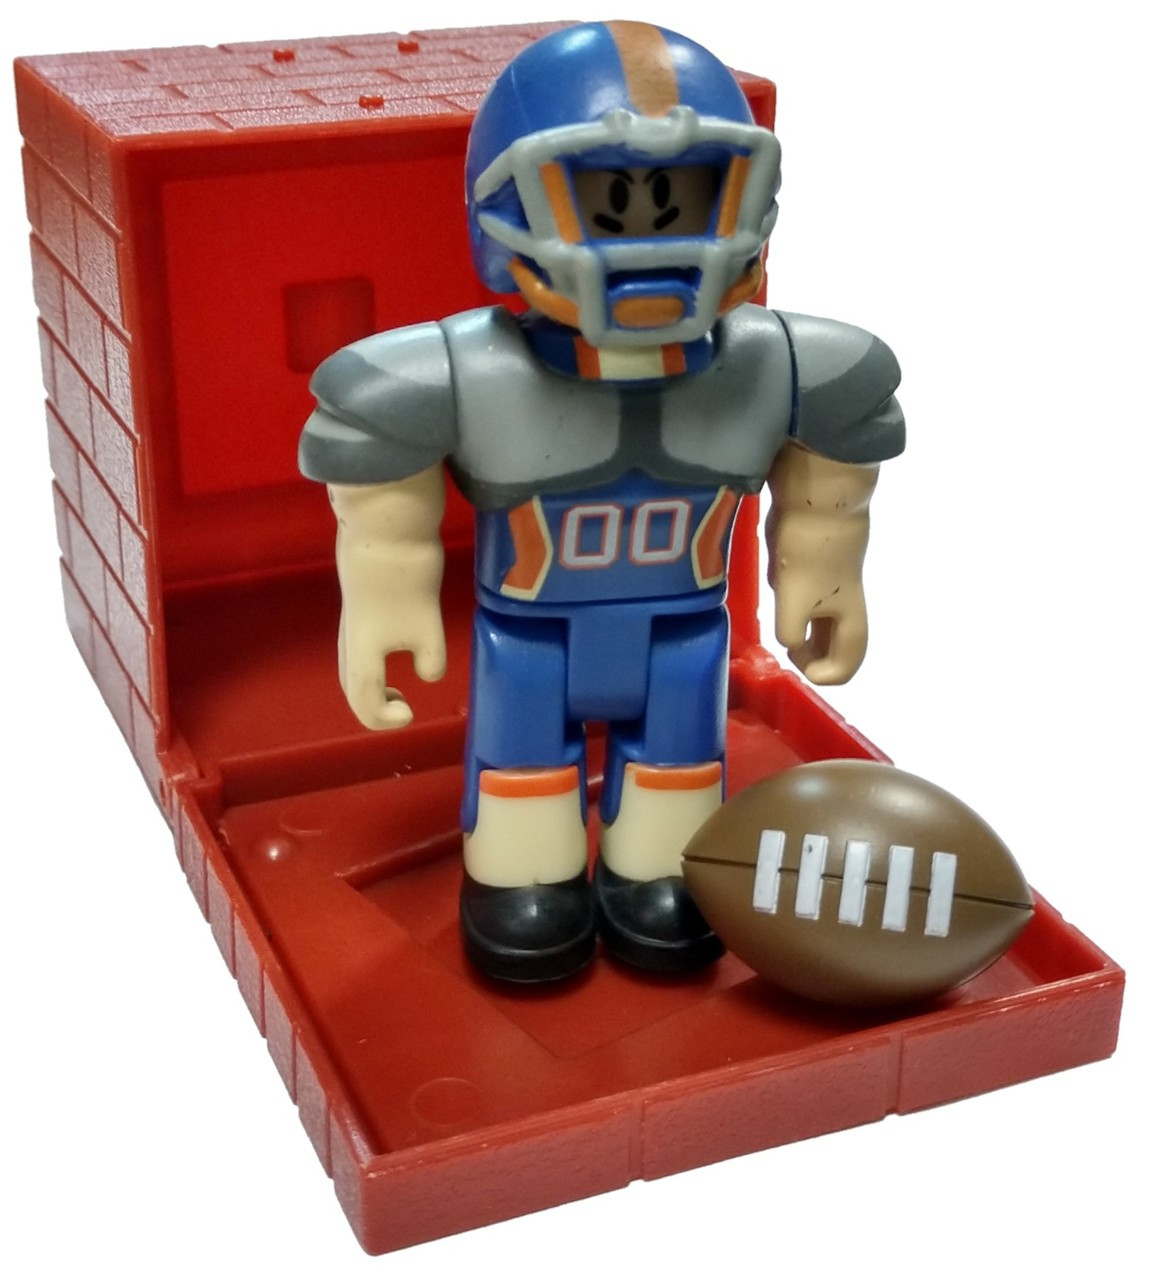 Playing Roblox High School Roblox Red Series 4 Roblox High School Quarterback 3 Mini Figure With Red Cube And Online Code Loose Jazwares Toywiz